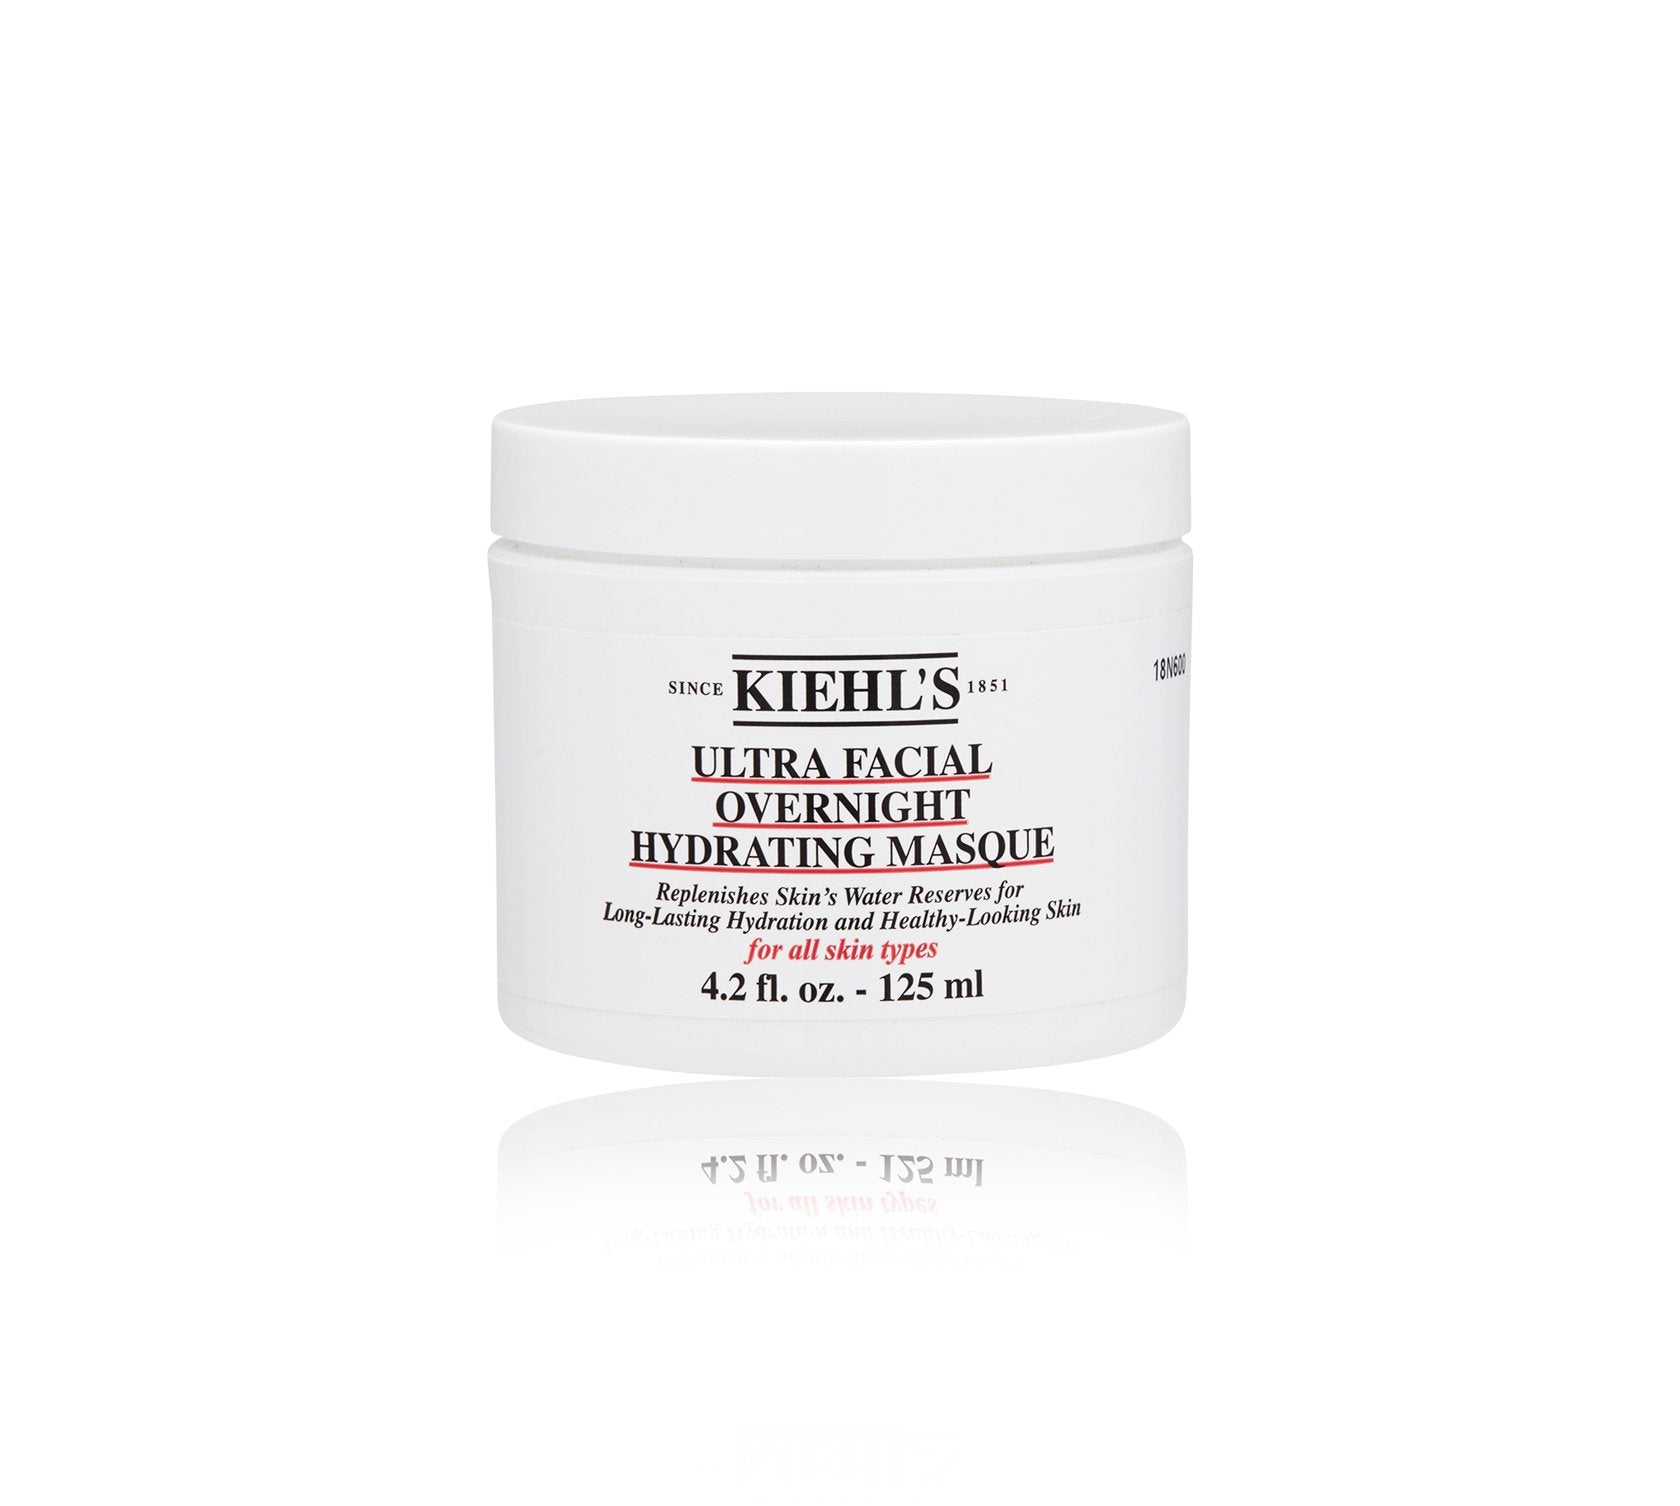 ultra-facial-overnight-hydrating-masque